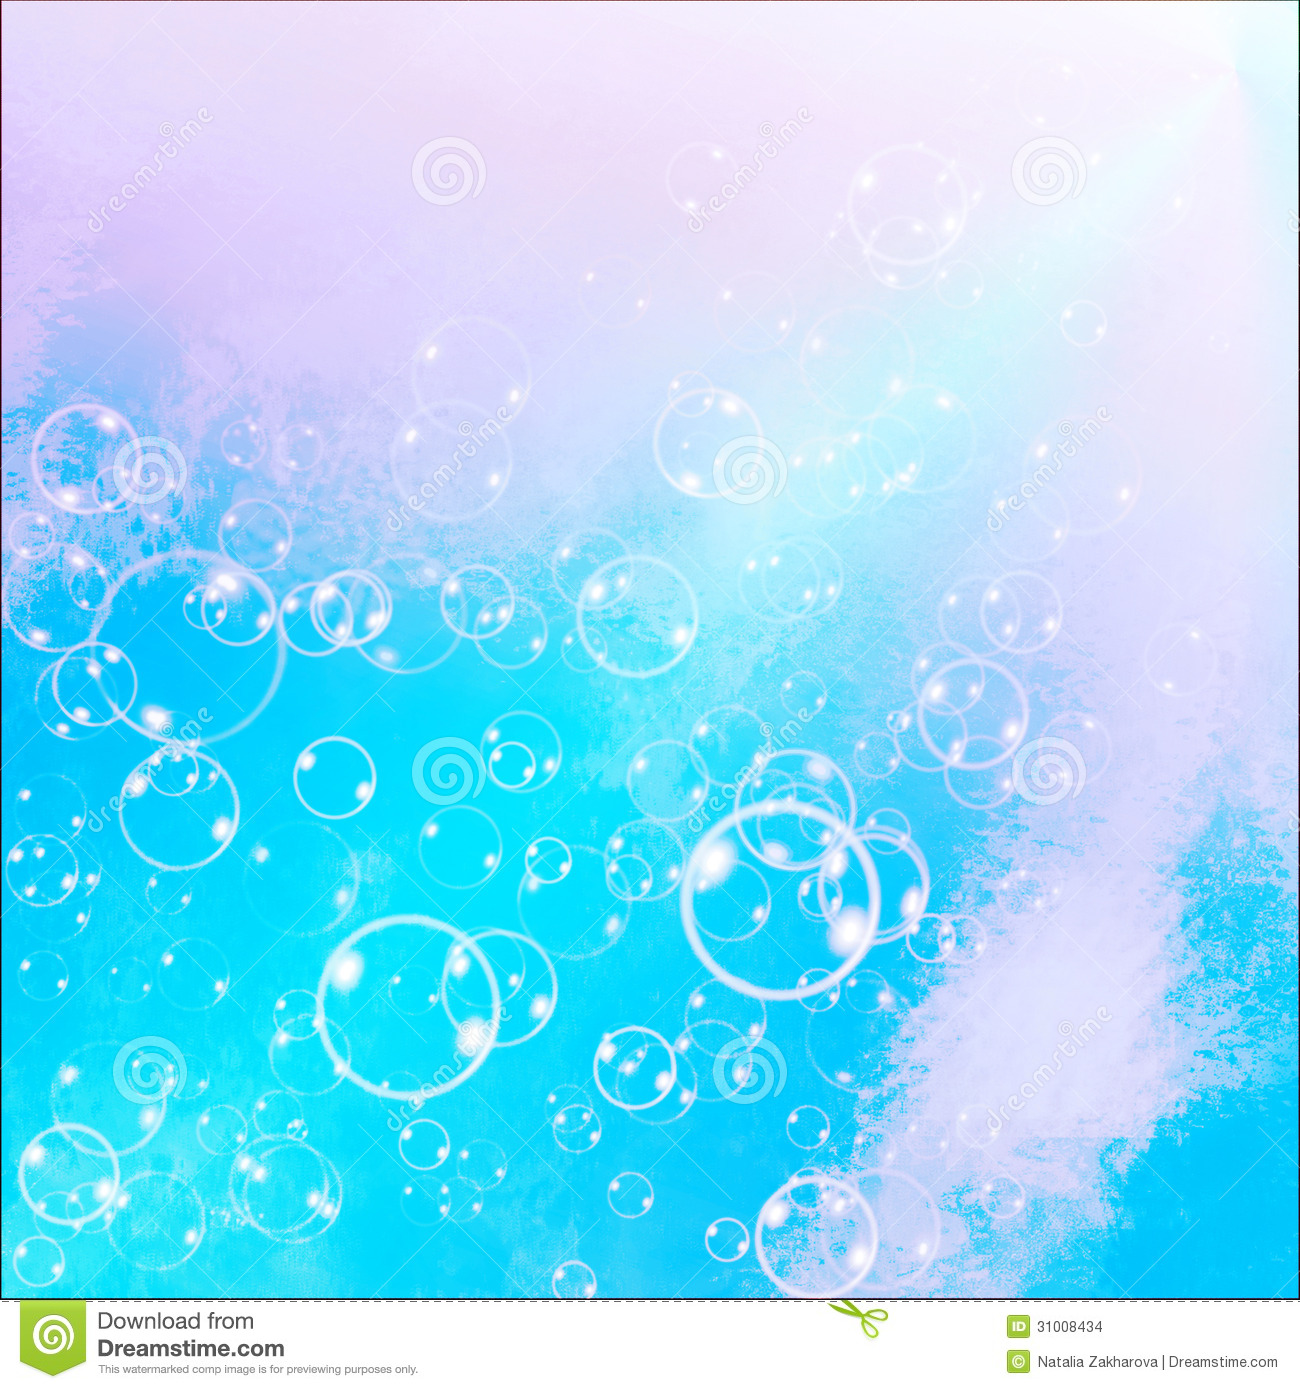 Soap Bubbles On A Blue Sky Background Stock Images - Image: 31008434